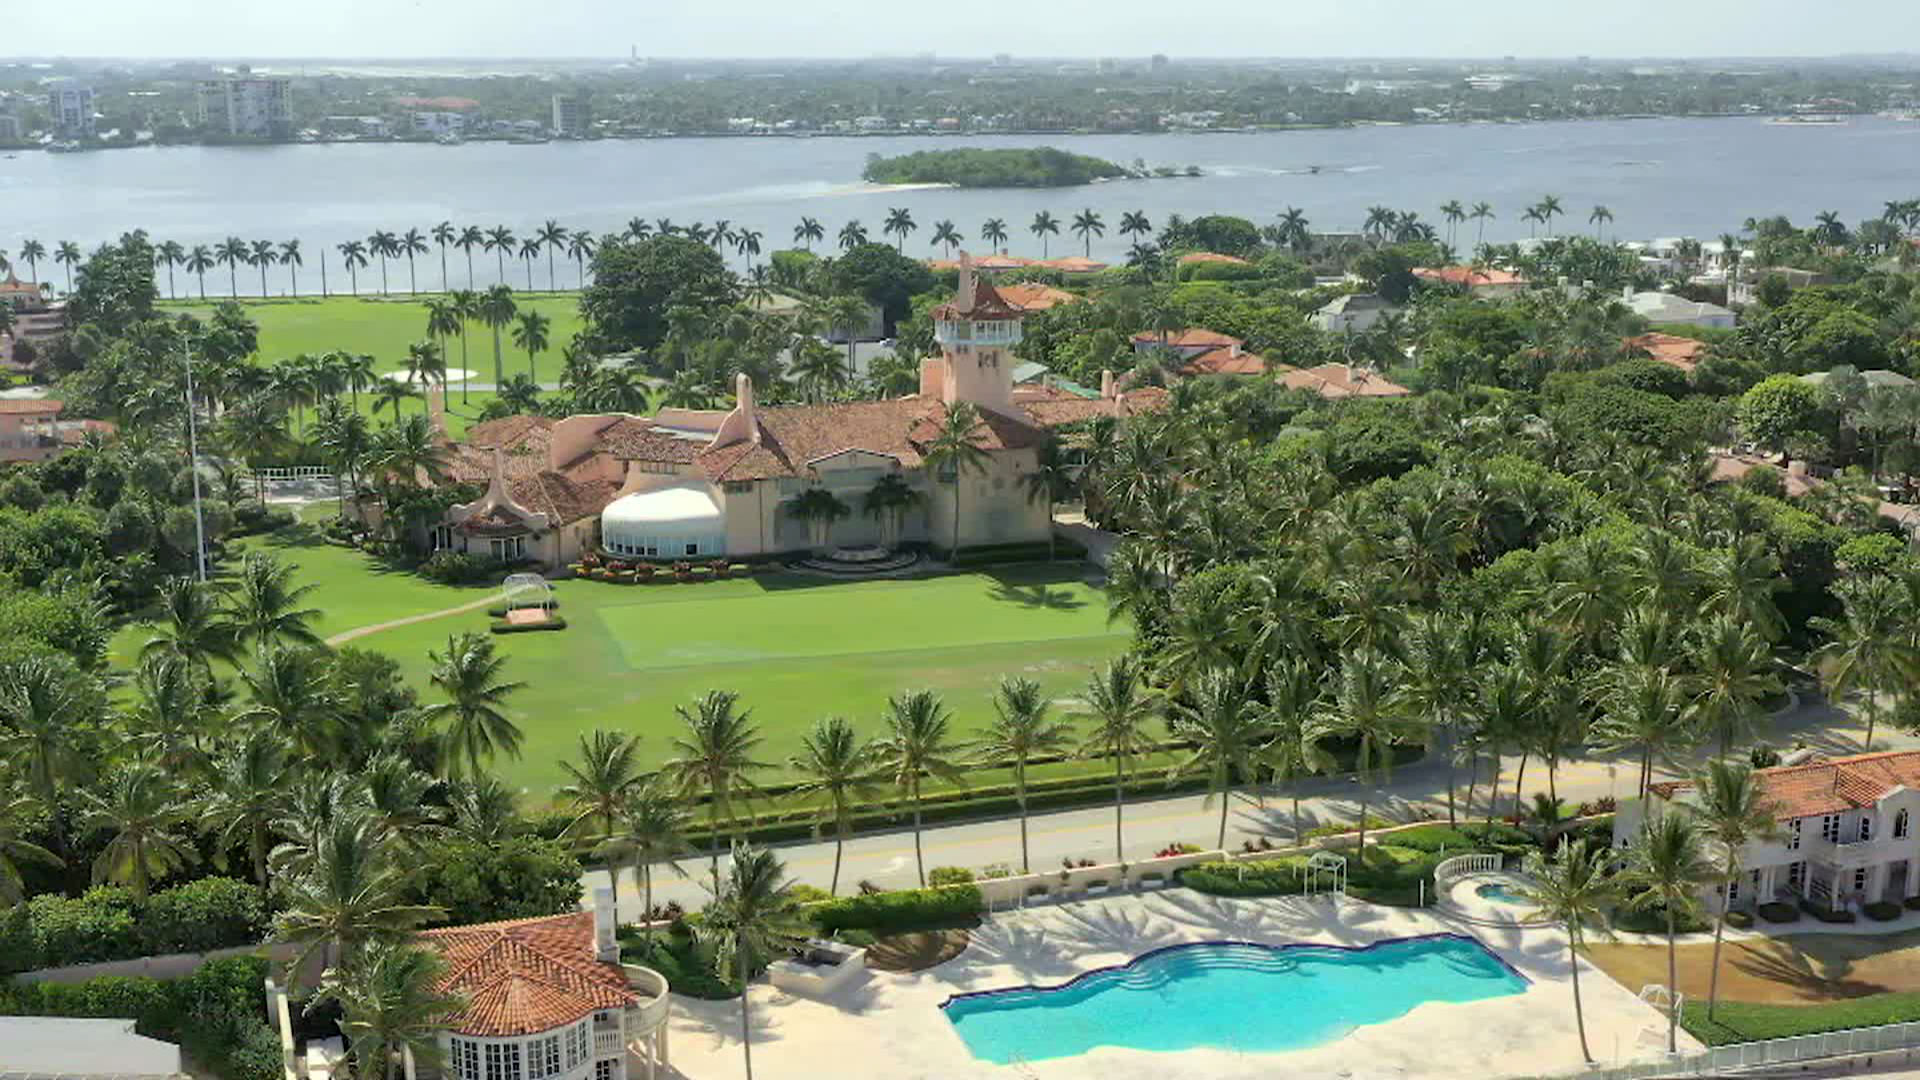 Three teens arrested at Mar-a-Lago after fleeing from police